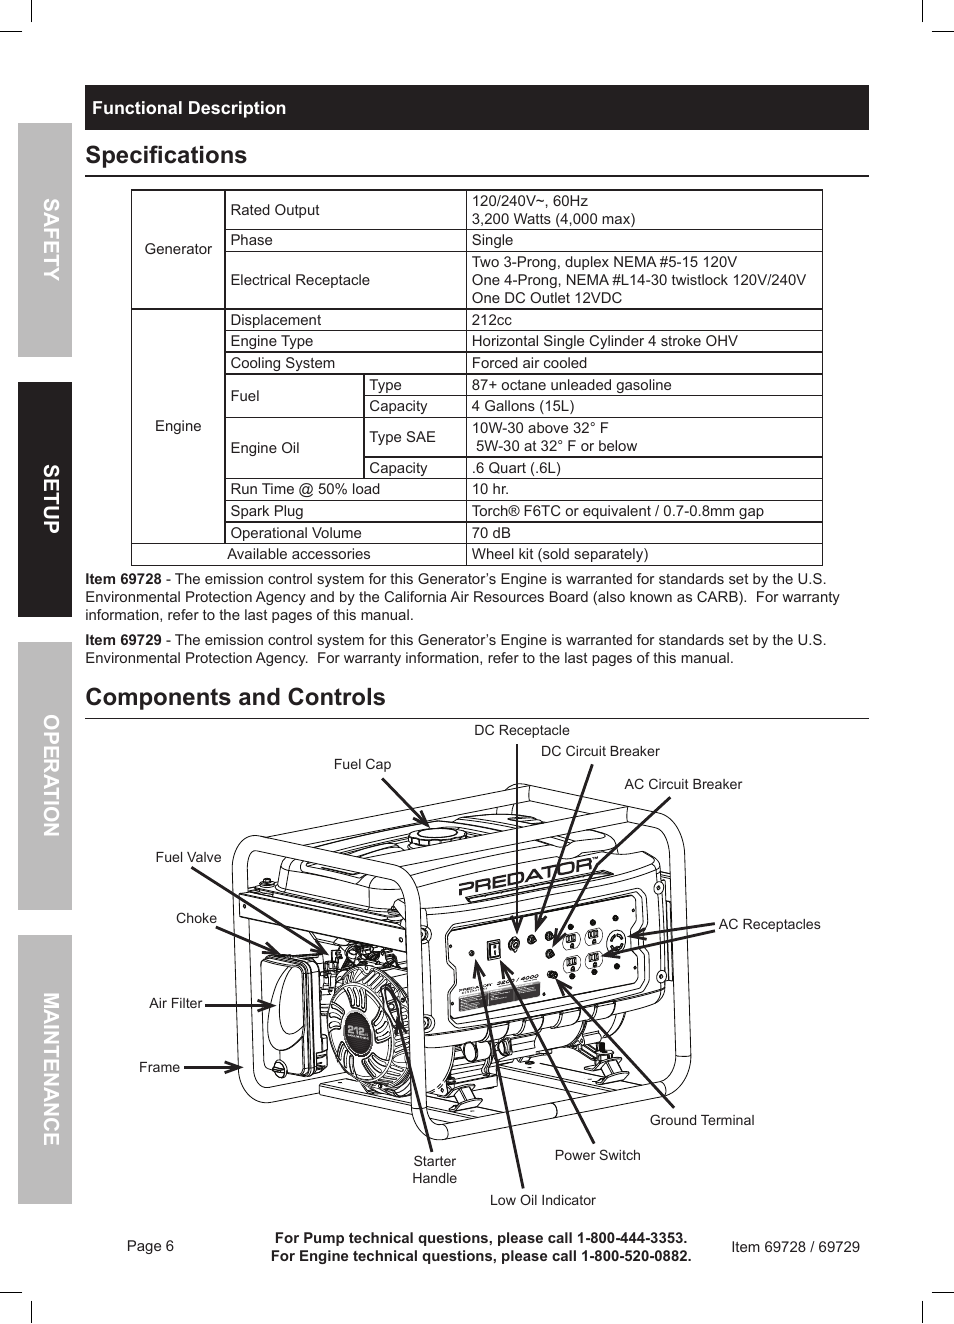 hight resolution of specifications components and controls harbor freight tools predator generator 69728 user manual page 6 24